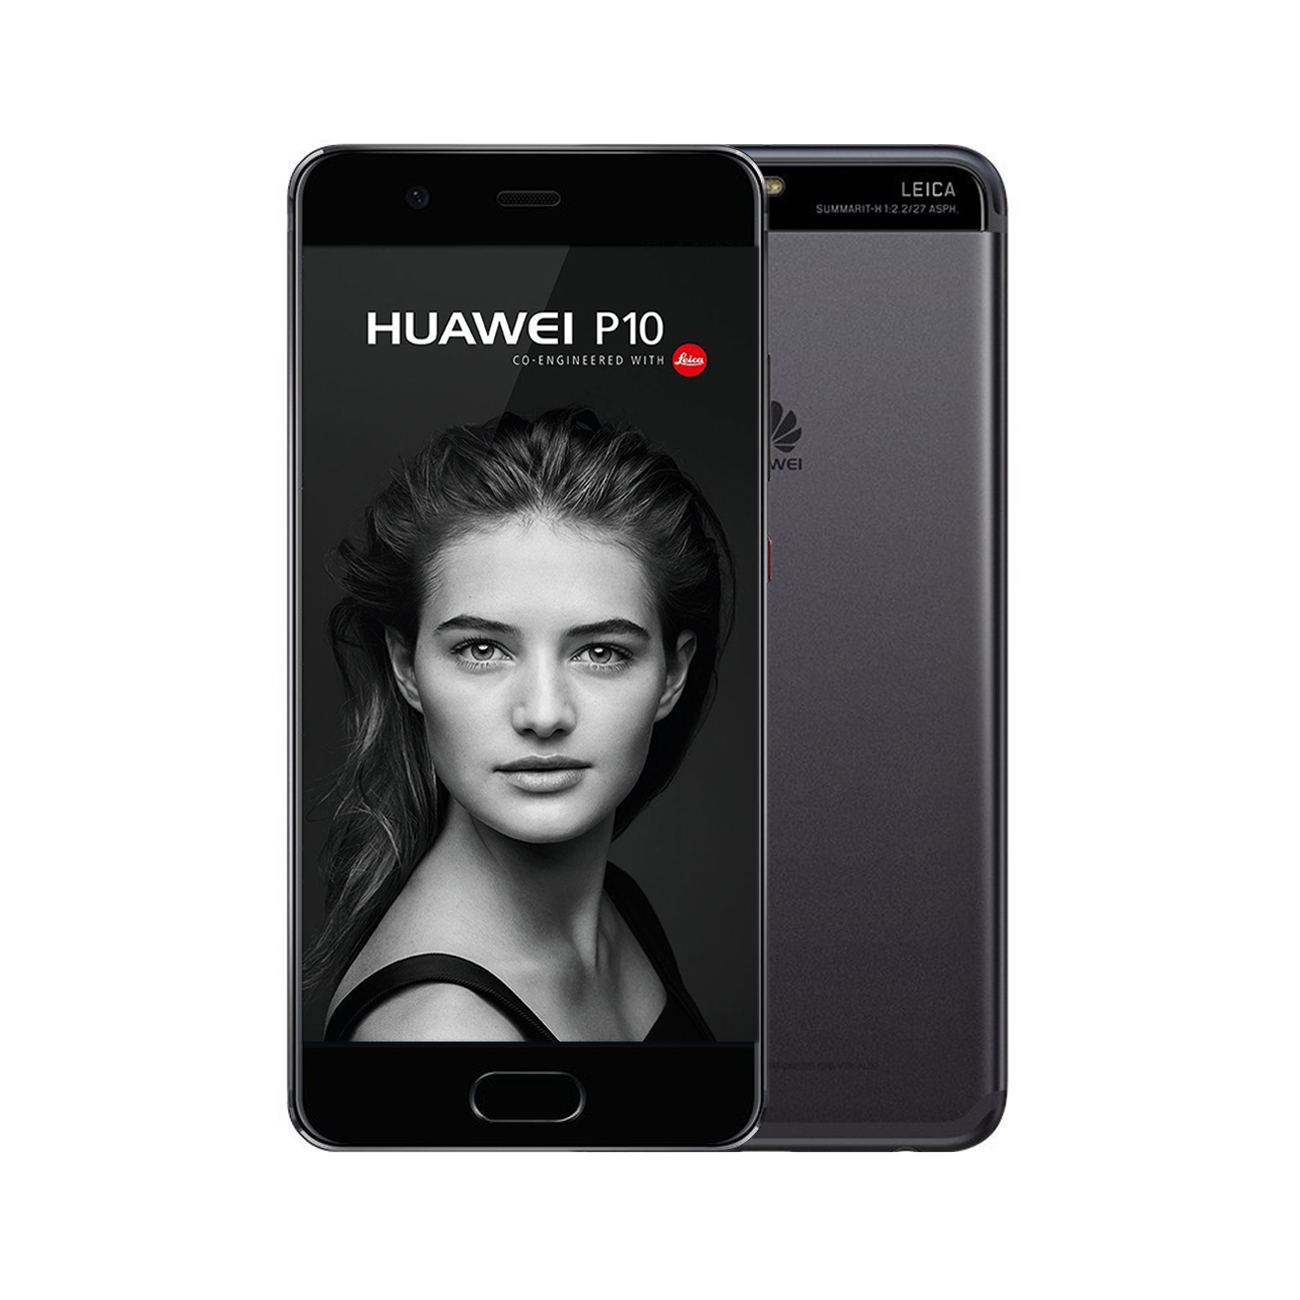 Huawei P10 [64GB] [Graphite Black] [Good] [6M]